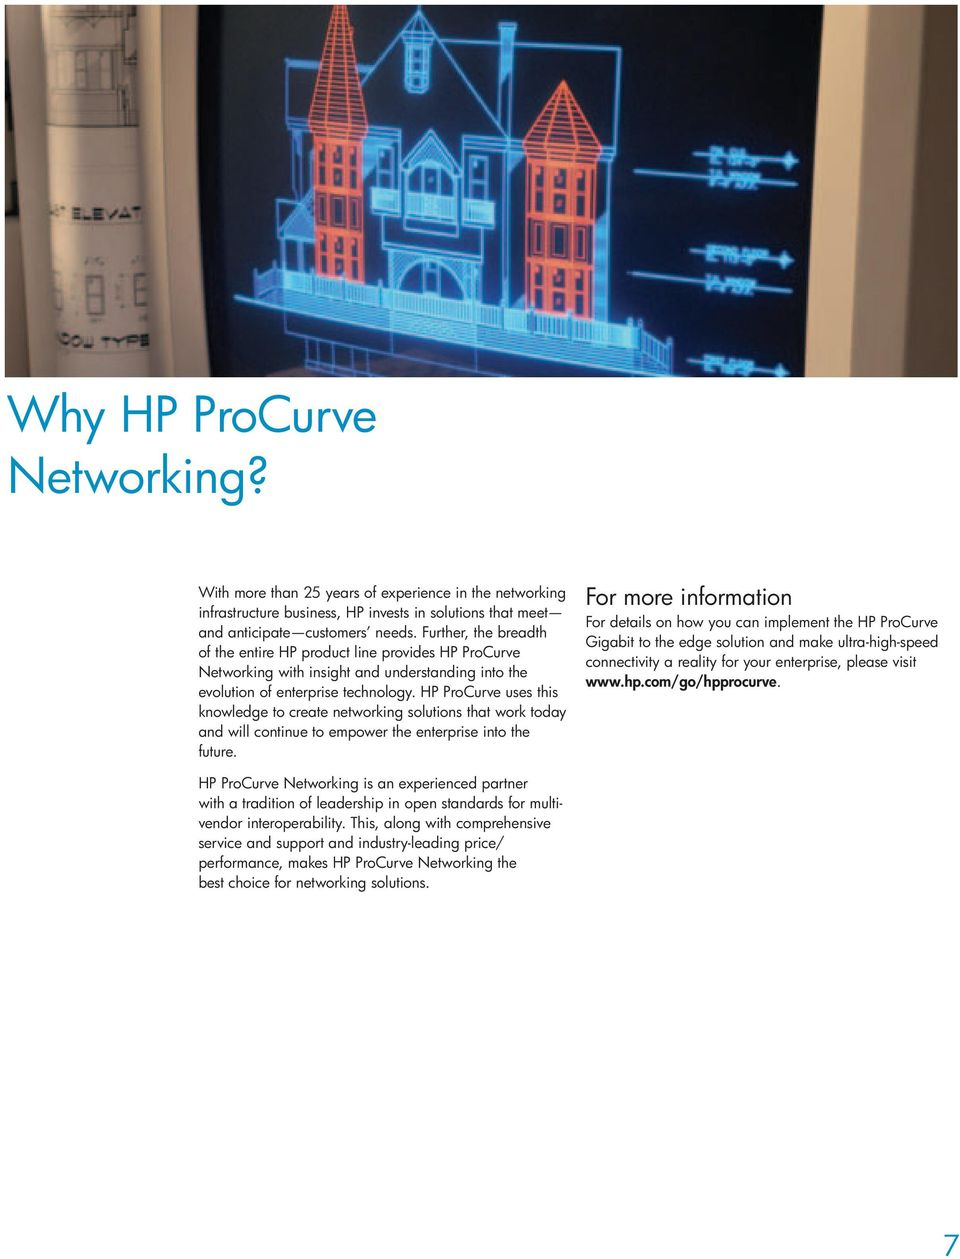 HP ProCurve uses this knowledge to create networking solutions that work today and will continue to empower the enterprise into the future.